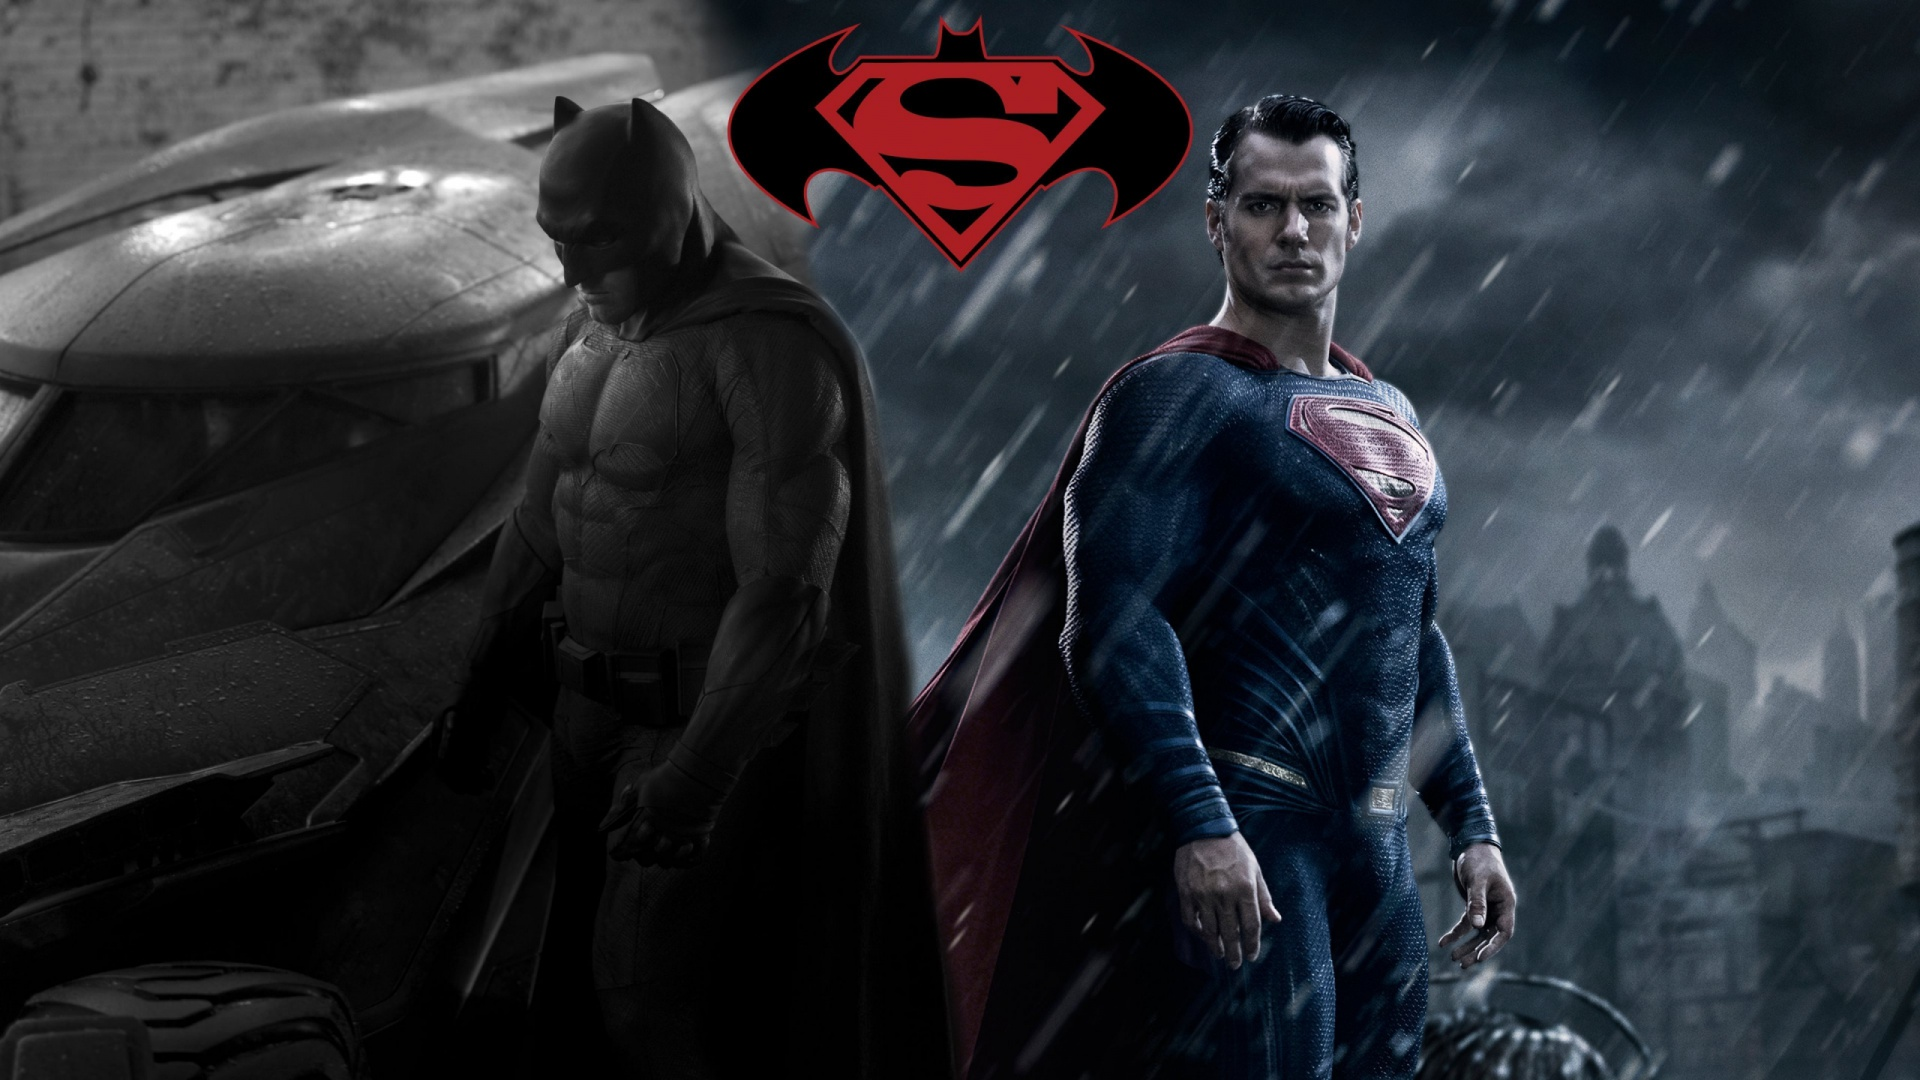 1920x1080 Batman vs Superman Fan Artwork desktop PC and Mac wallpaper 1920x1080